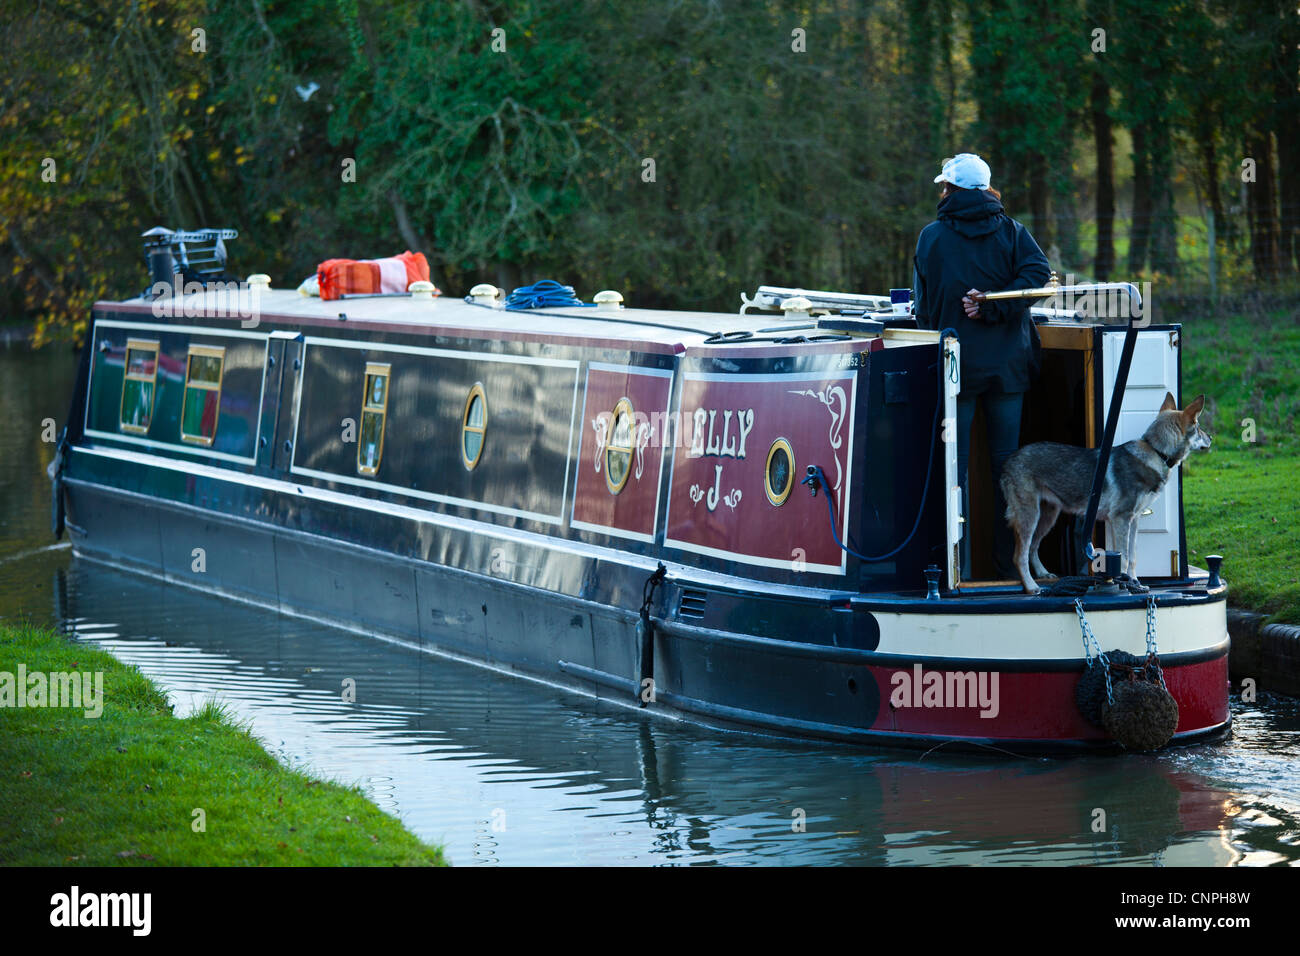 A canal boat under way on the Grand Union Canal near to Milton Keynes, UK. - Stock Image